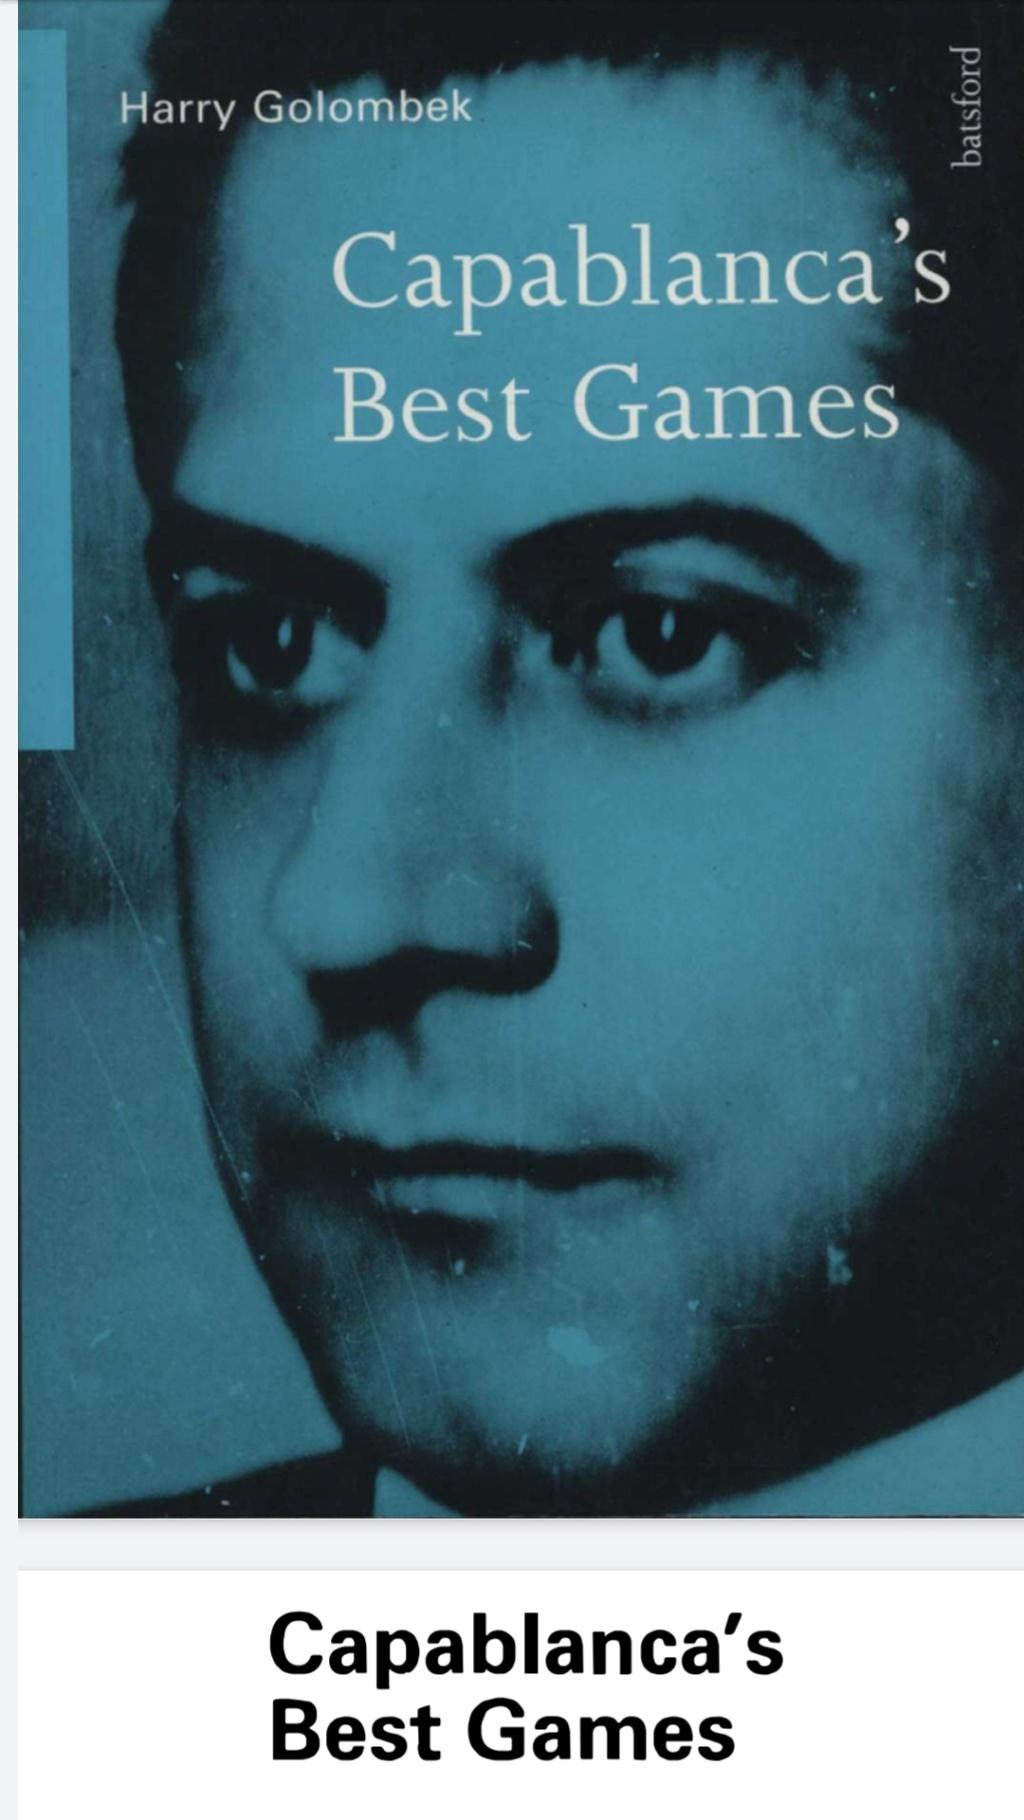 Capablanca's 100 Best Games of Chess by Harry Golombek Screen18